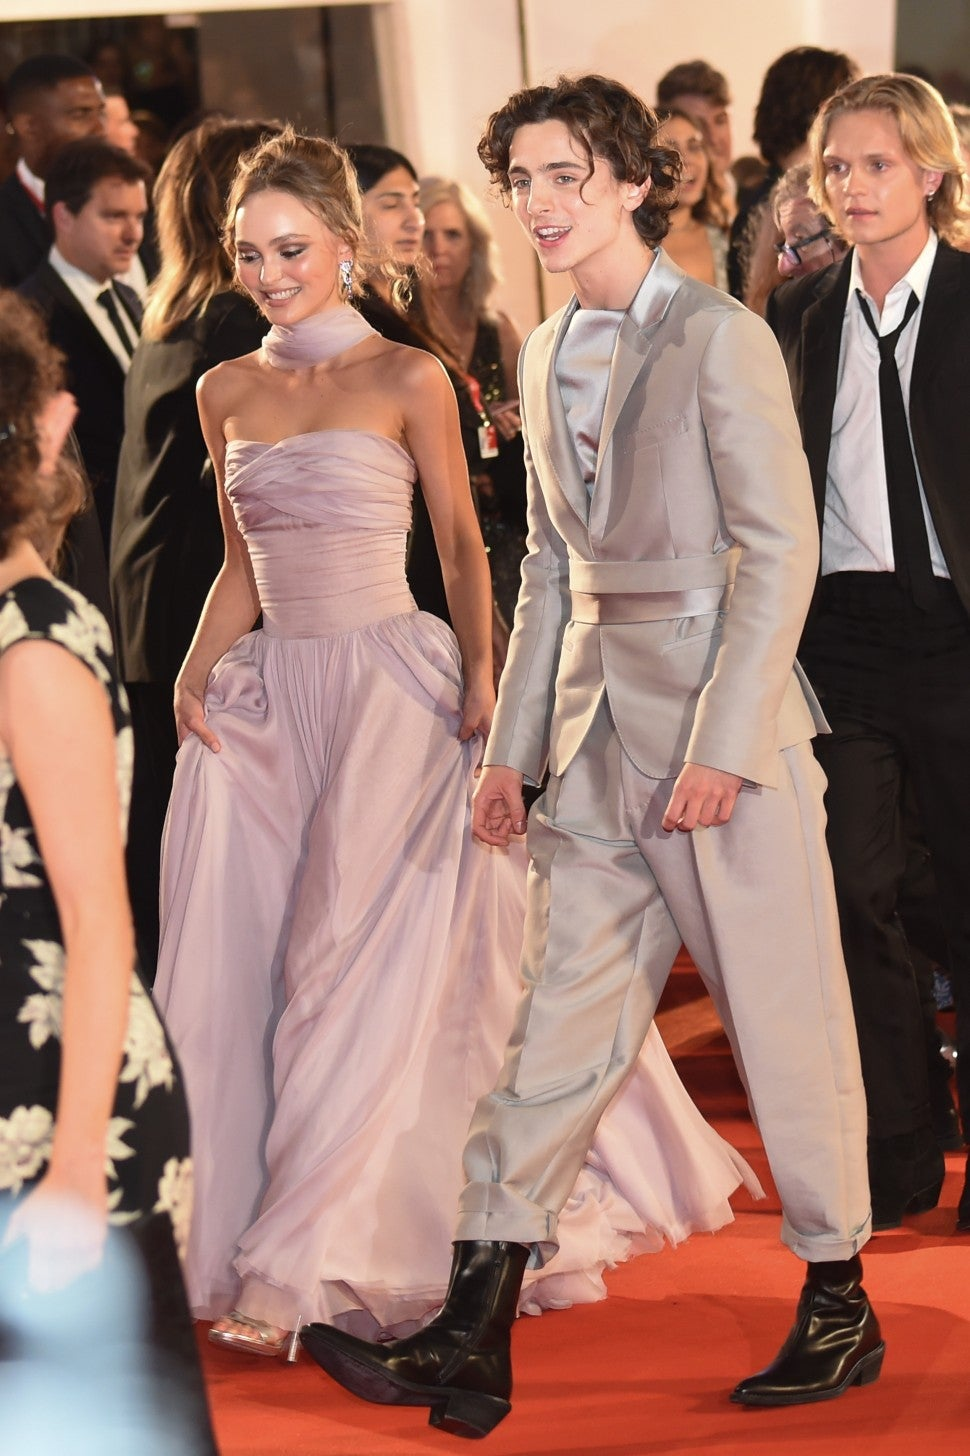 Lily-Rose Depp and Timothee Chalamet at Venice Film Festival The King screening